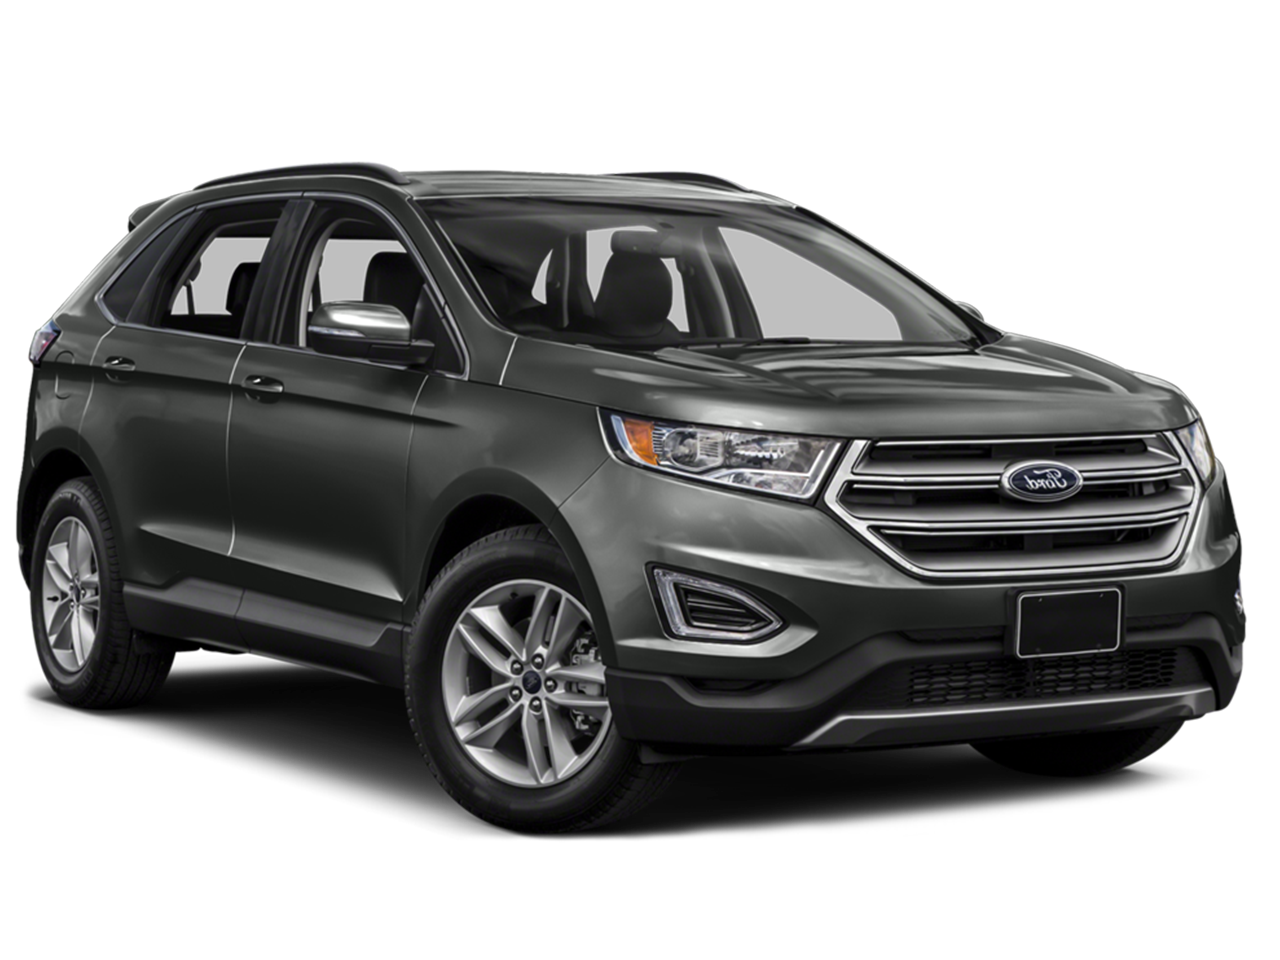 new 2016 ford edge. Black Bedroom Furniture Sets. Home Design Ideas